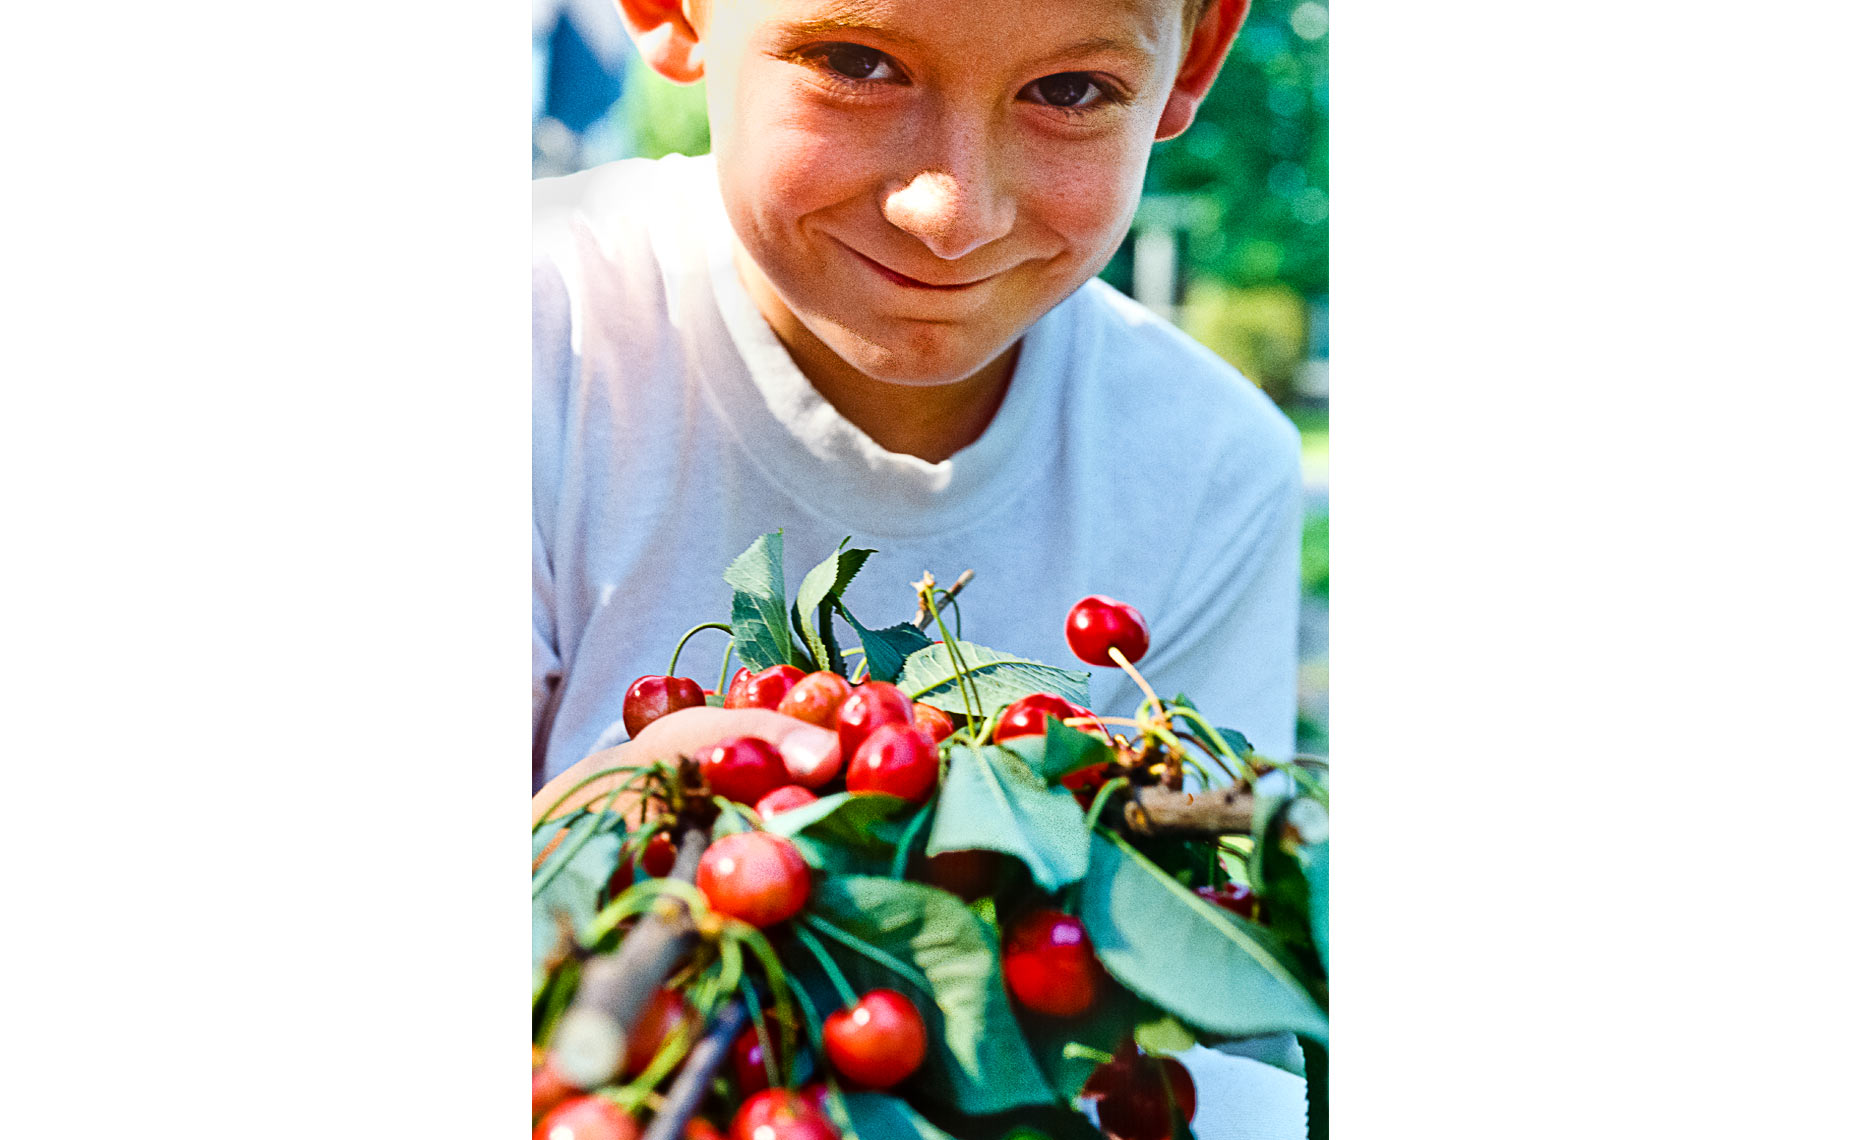 Kid-with-Cherries